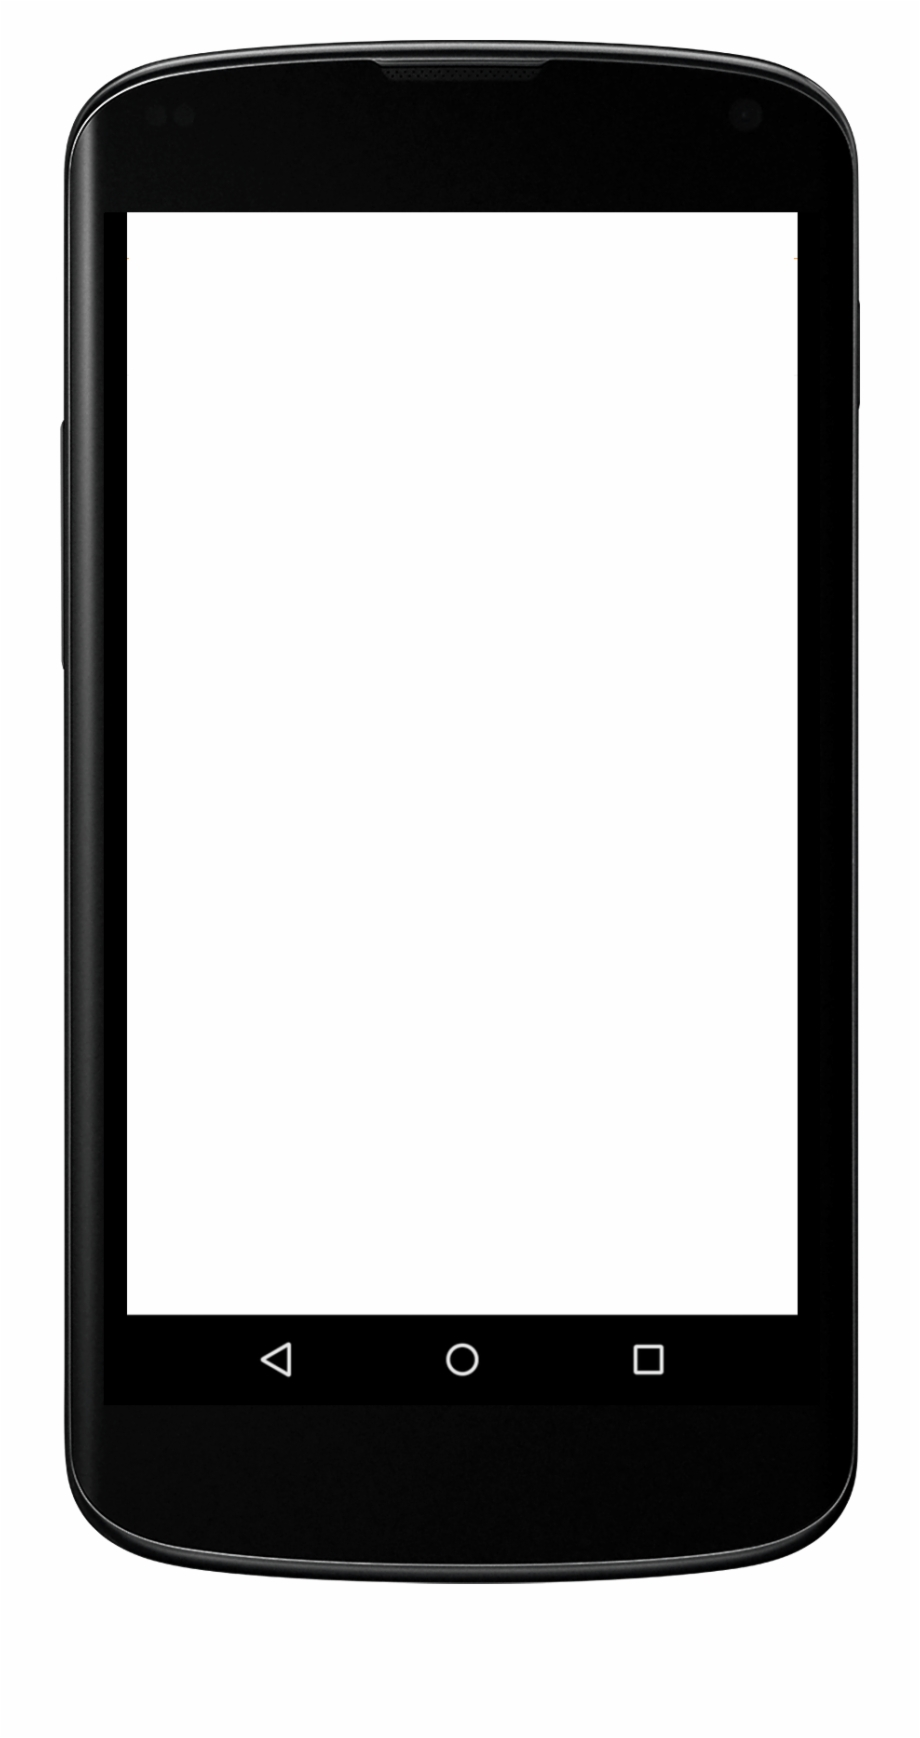 Blank iphone application screen clipart vector stock Iphone Smartphone Mobile Web Text Messaging Clip Art - Blank Mobile ... vector stock